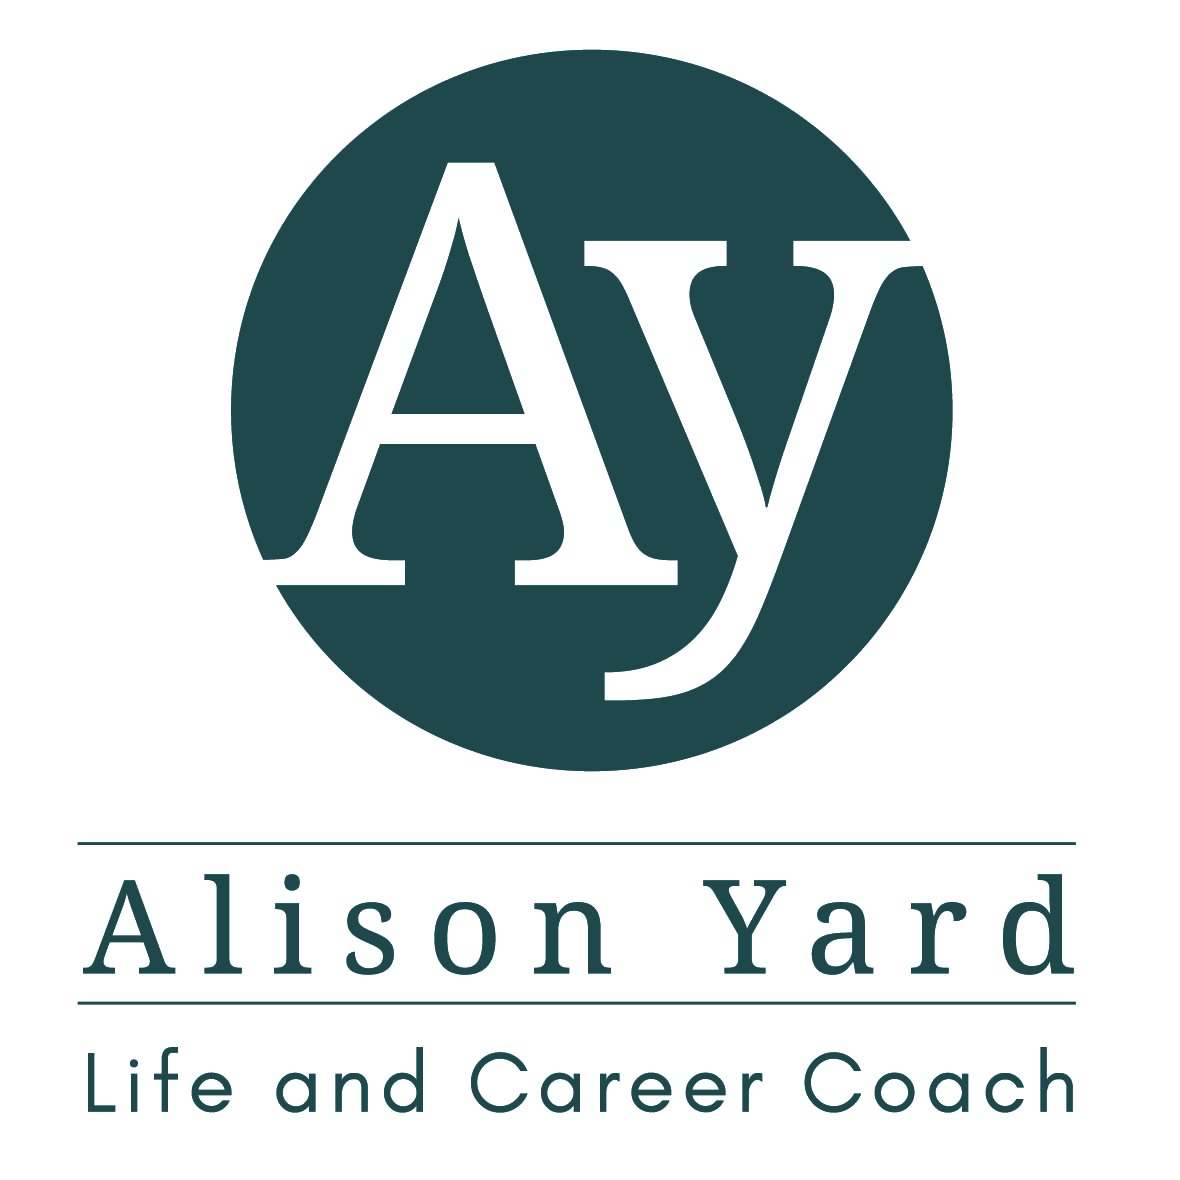 Alison Yard Life and Career Coach